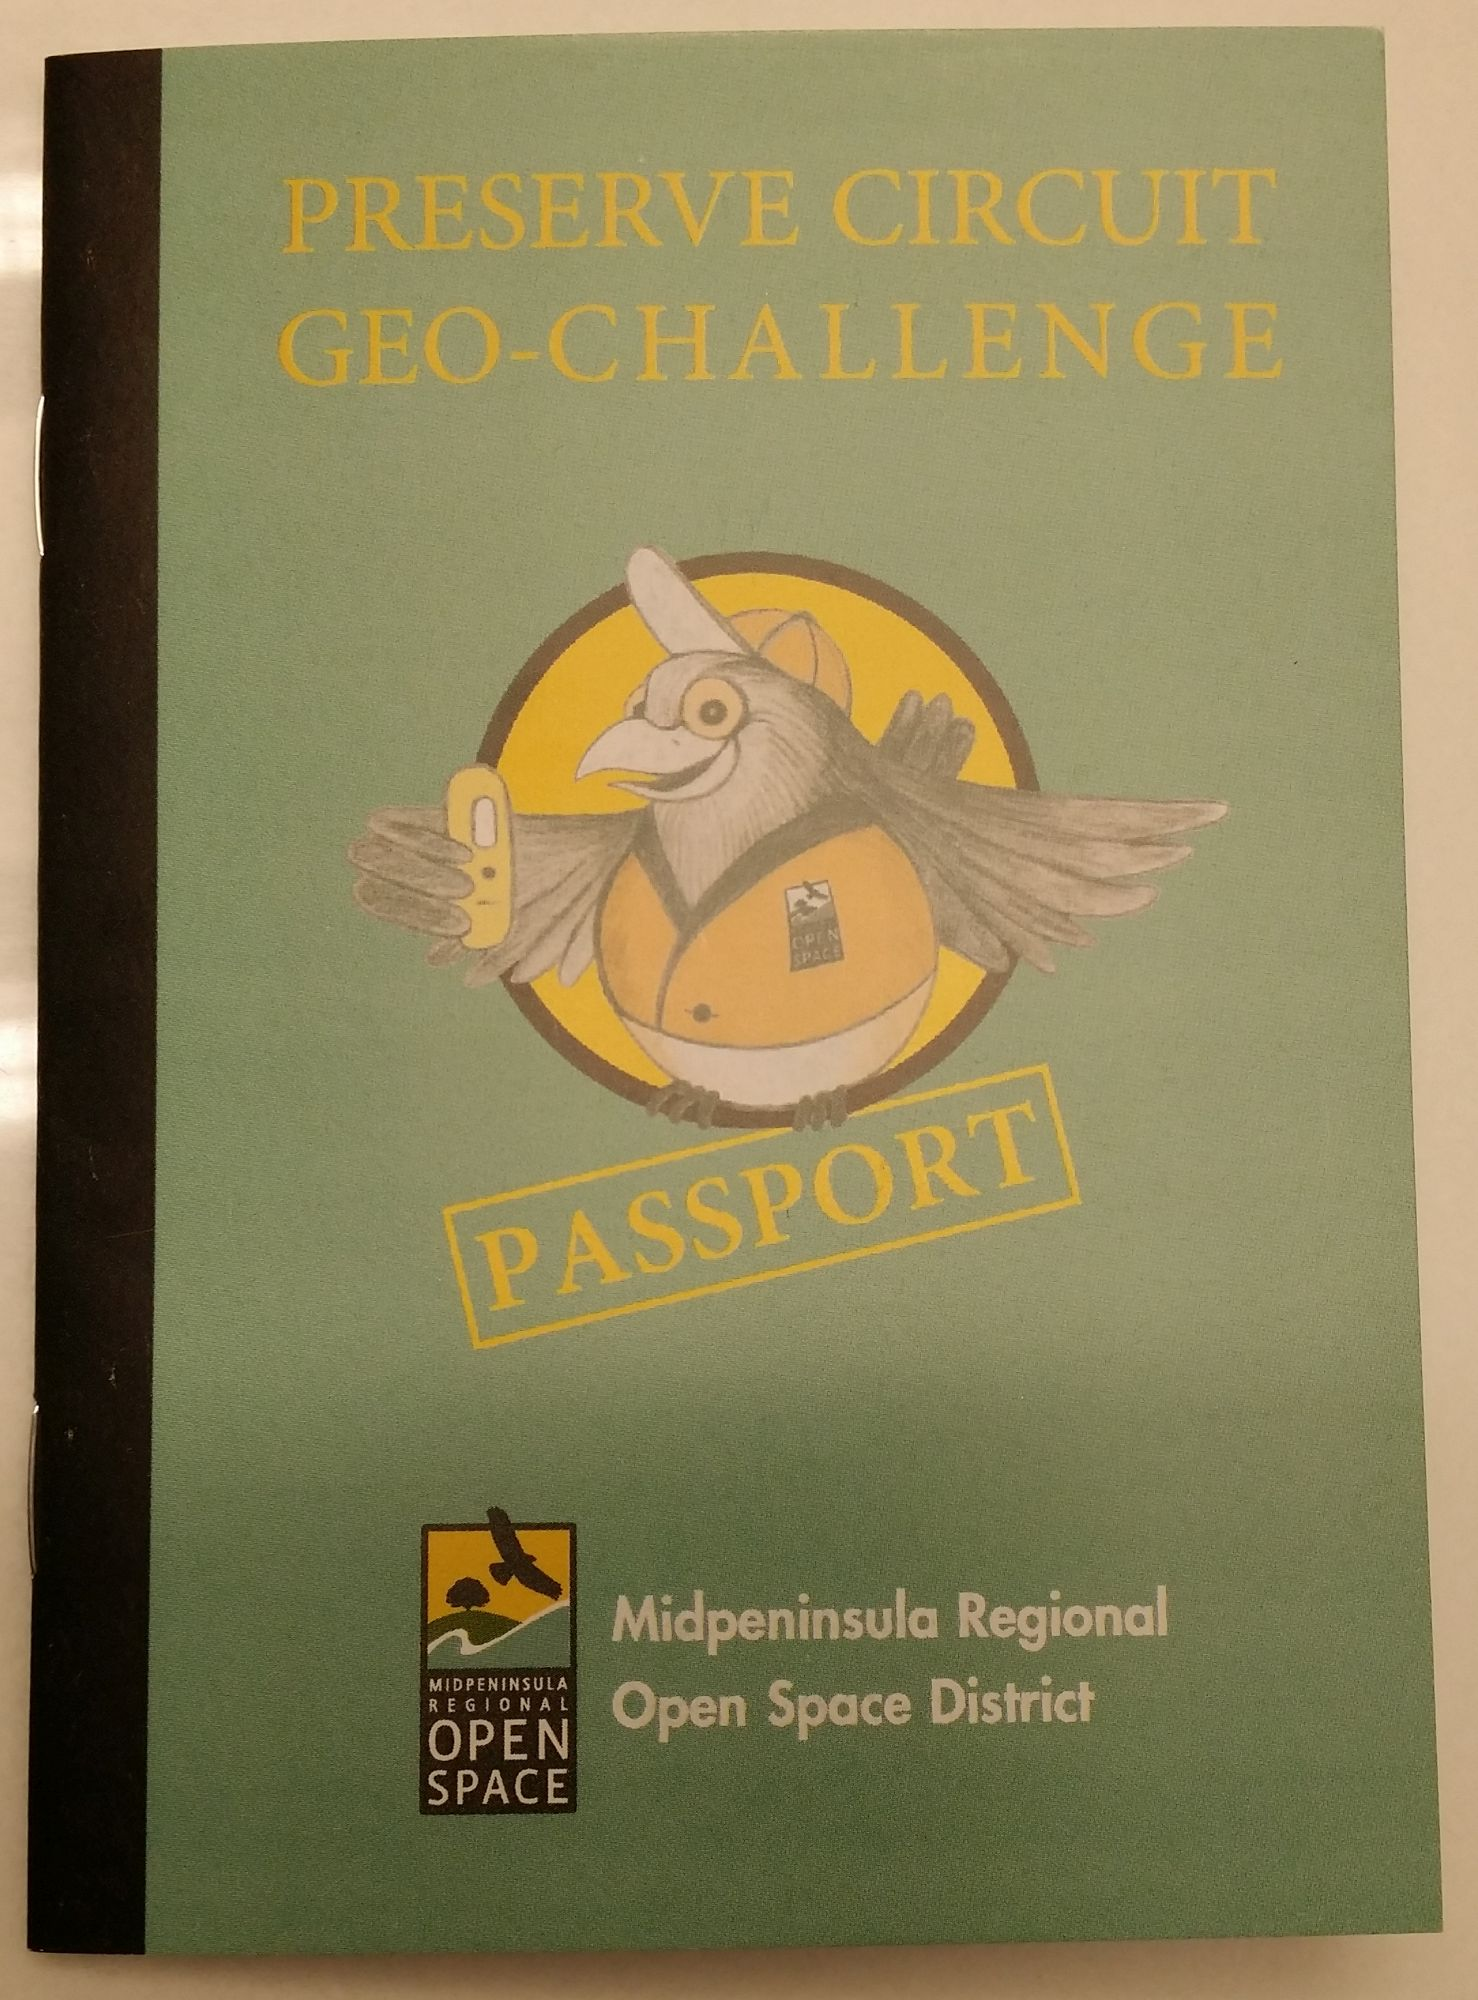 Preserve Circuit Geocache Challenge Passport arrived